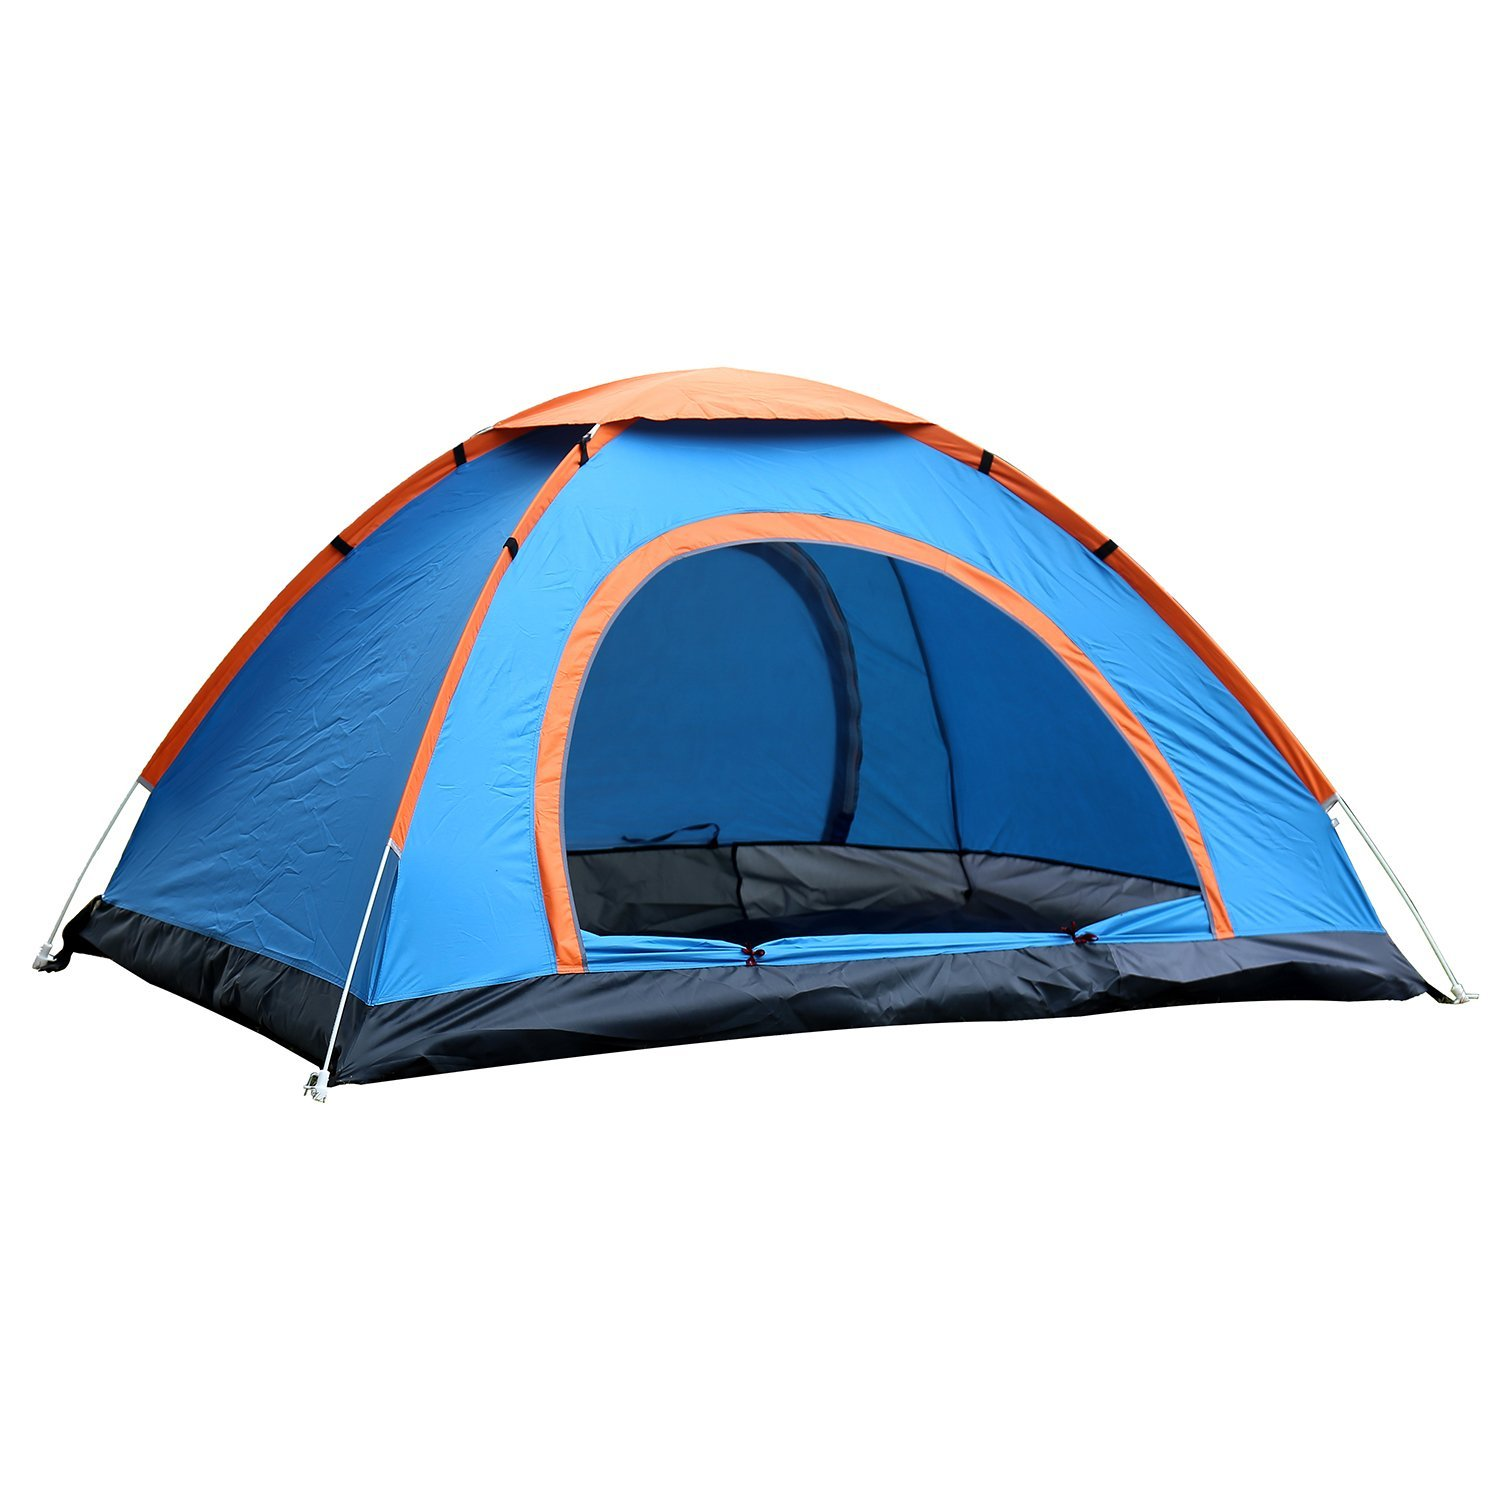 Kemuse Pop Up Camping Tent Only $37.99 + Free Shipping!